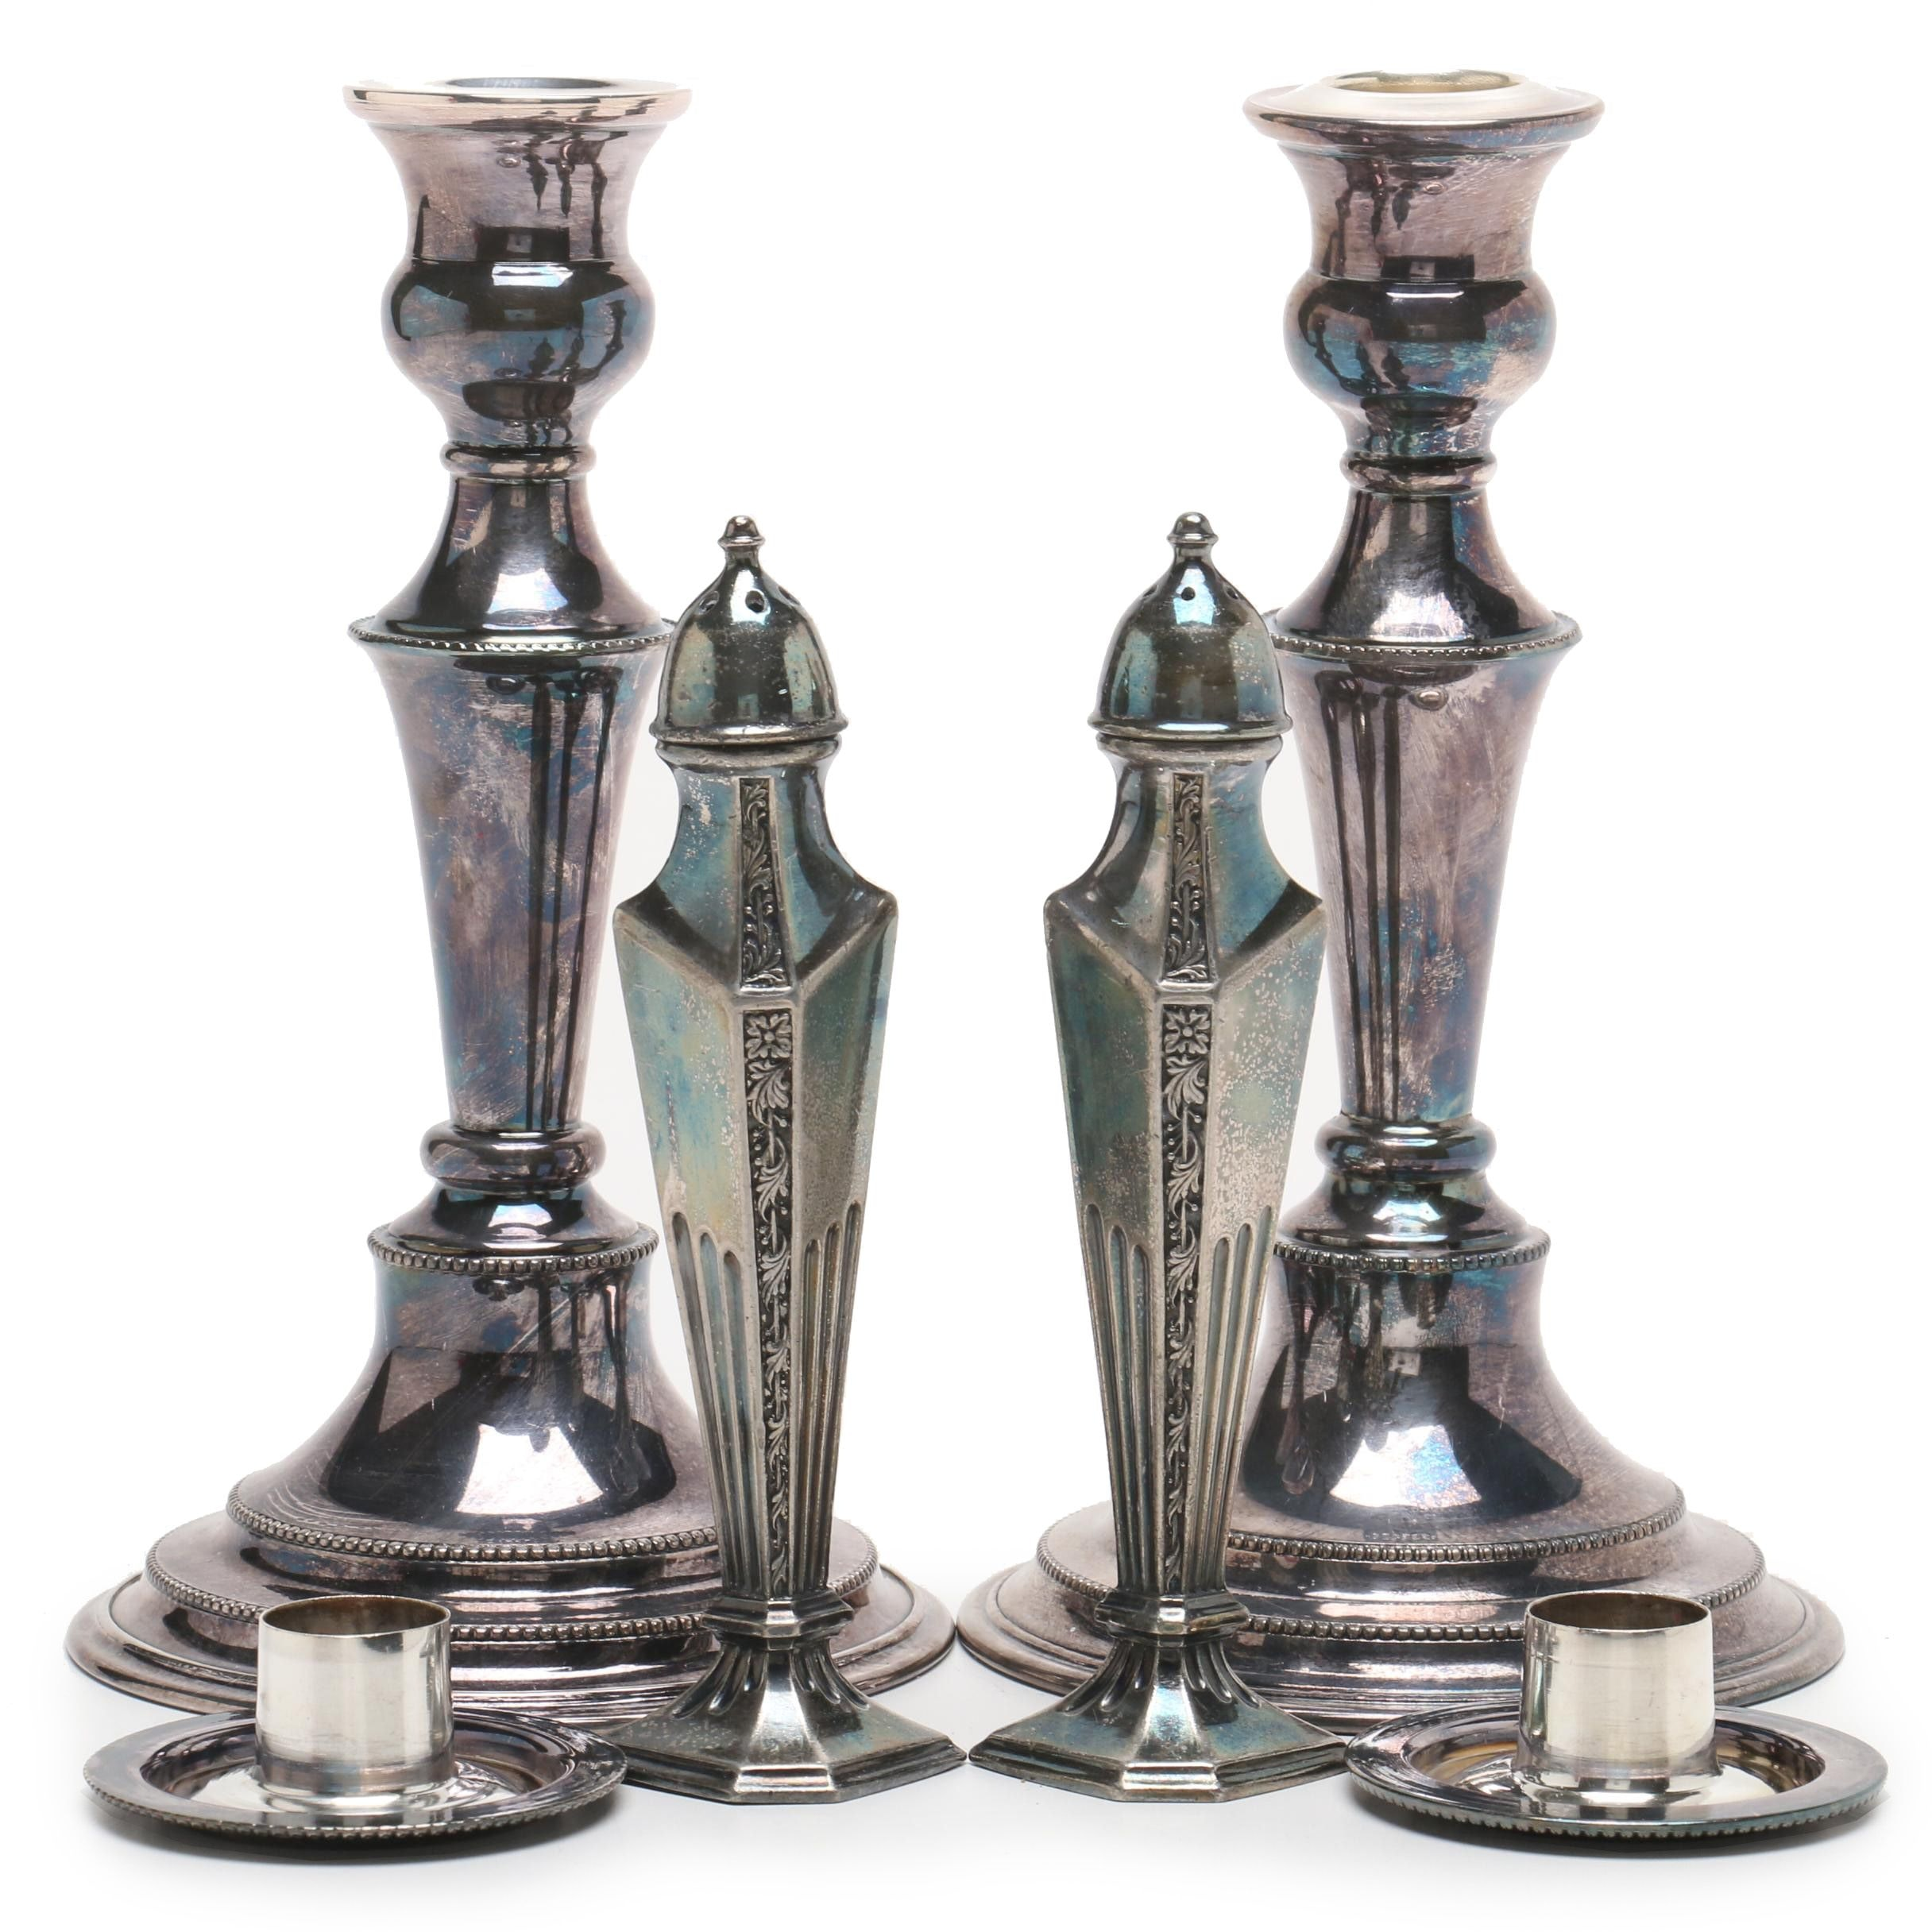 Silver Plate Candlesticks and Salt and Pepper Shakers